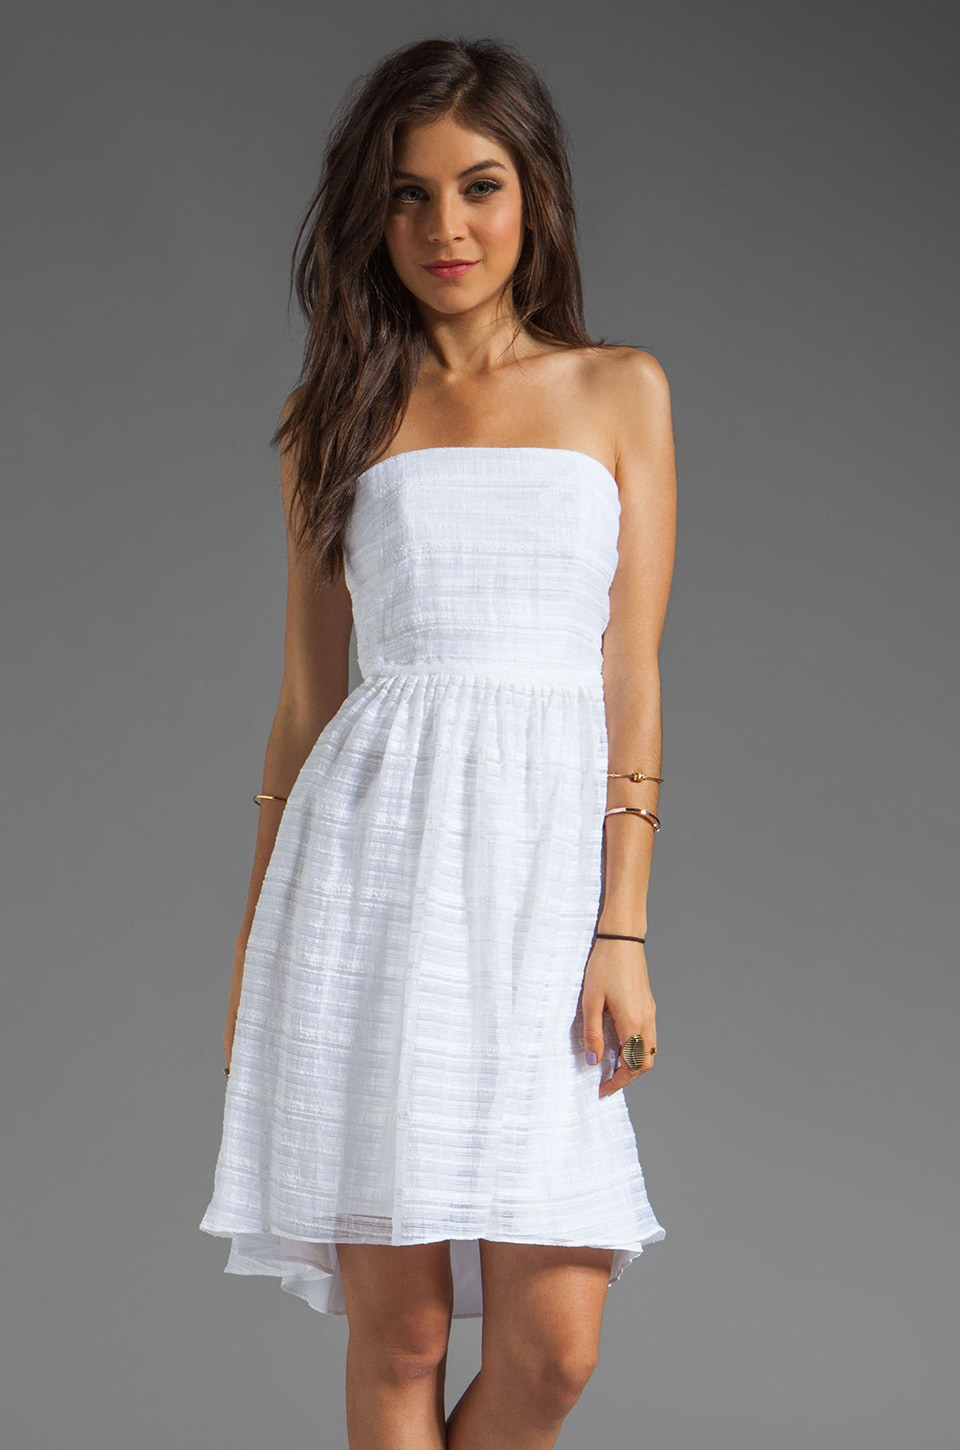 Tracy Reese Sheer Solid Stripes High/Low Strapless Dress in White